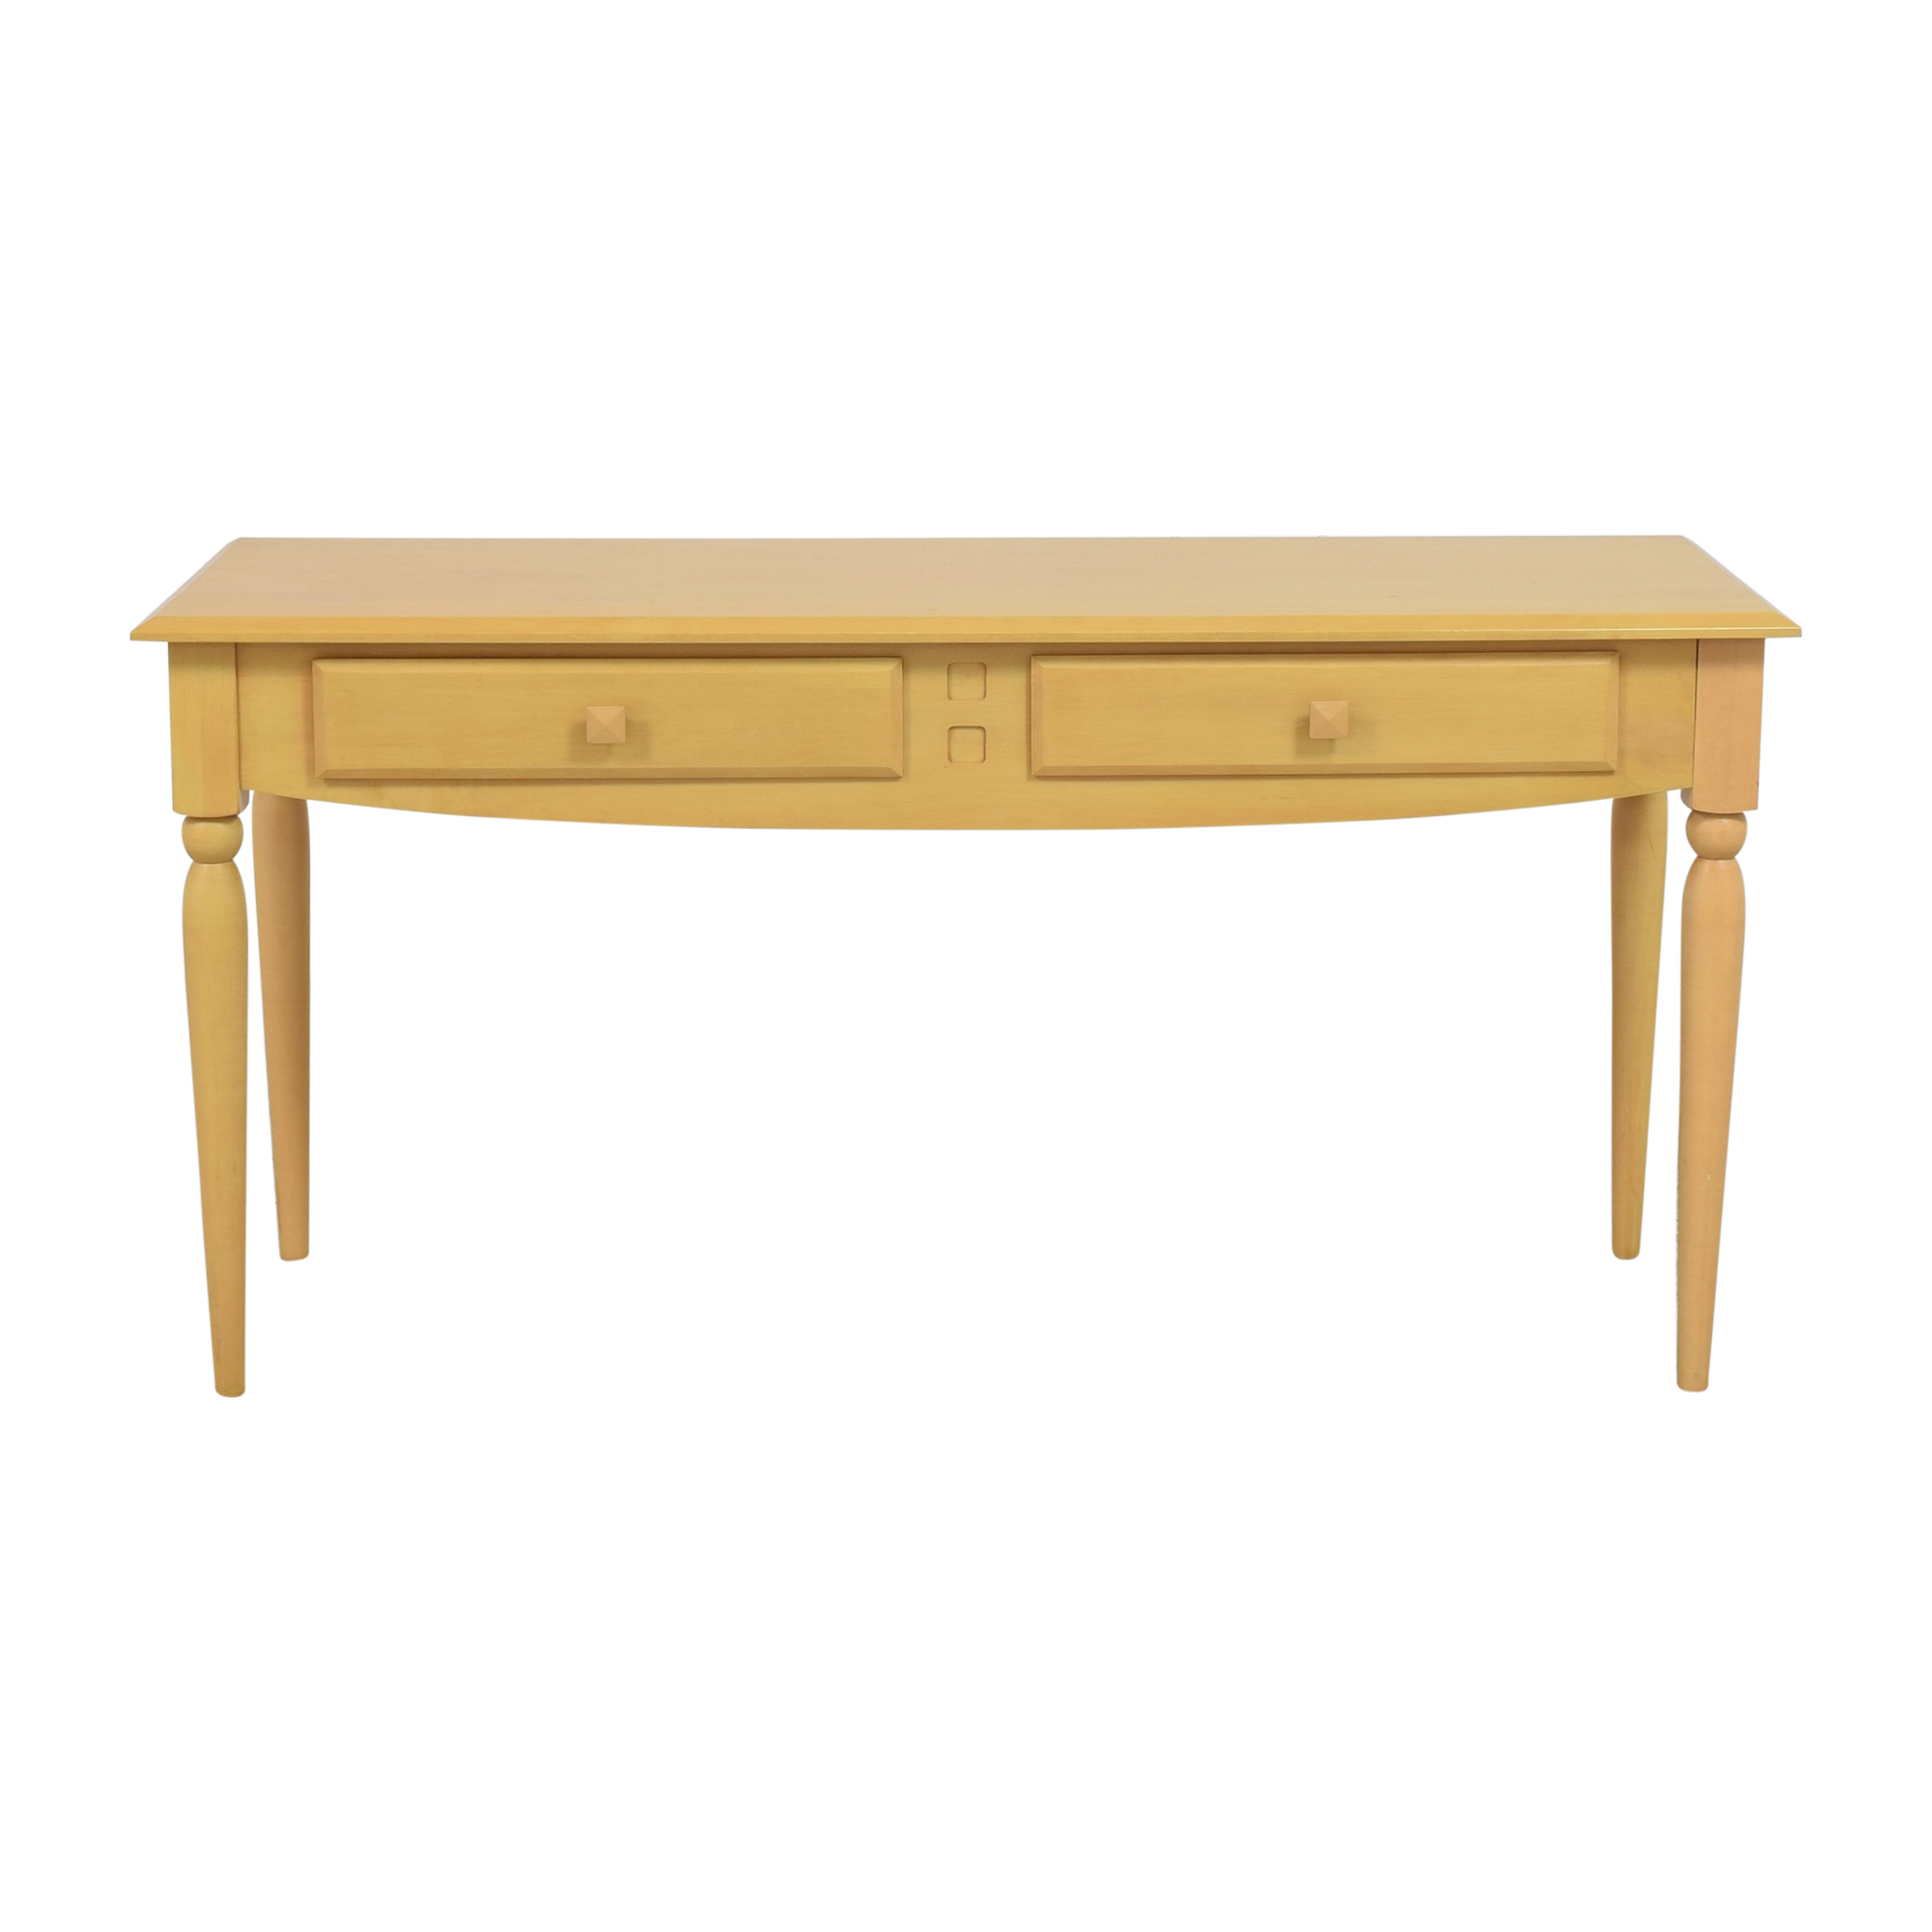 Ethan Allen Ethan Allen American Dimensions Console Table for sale